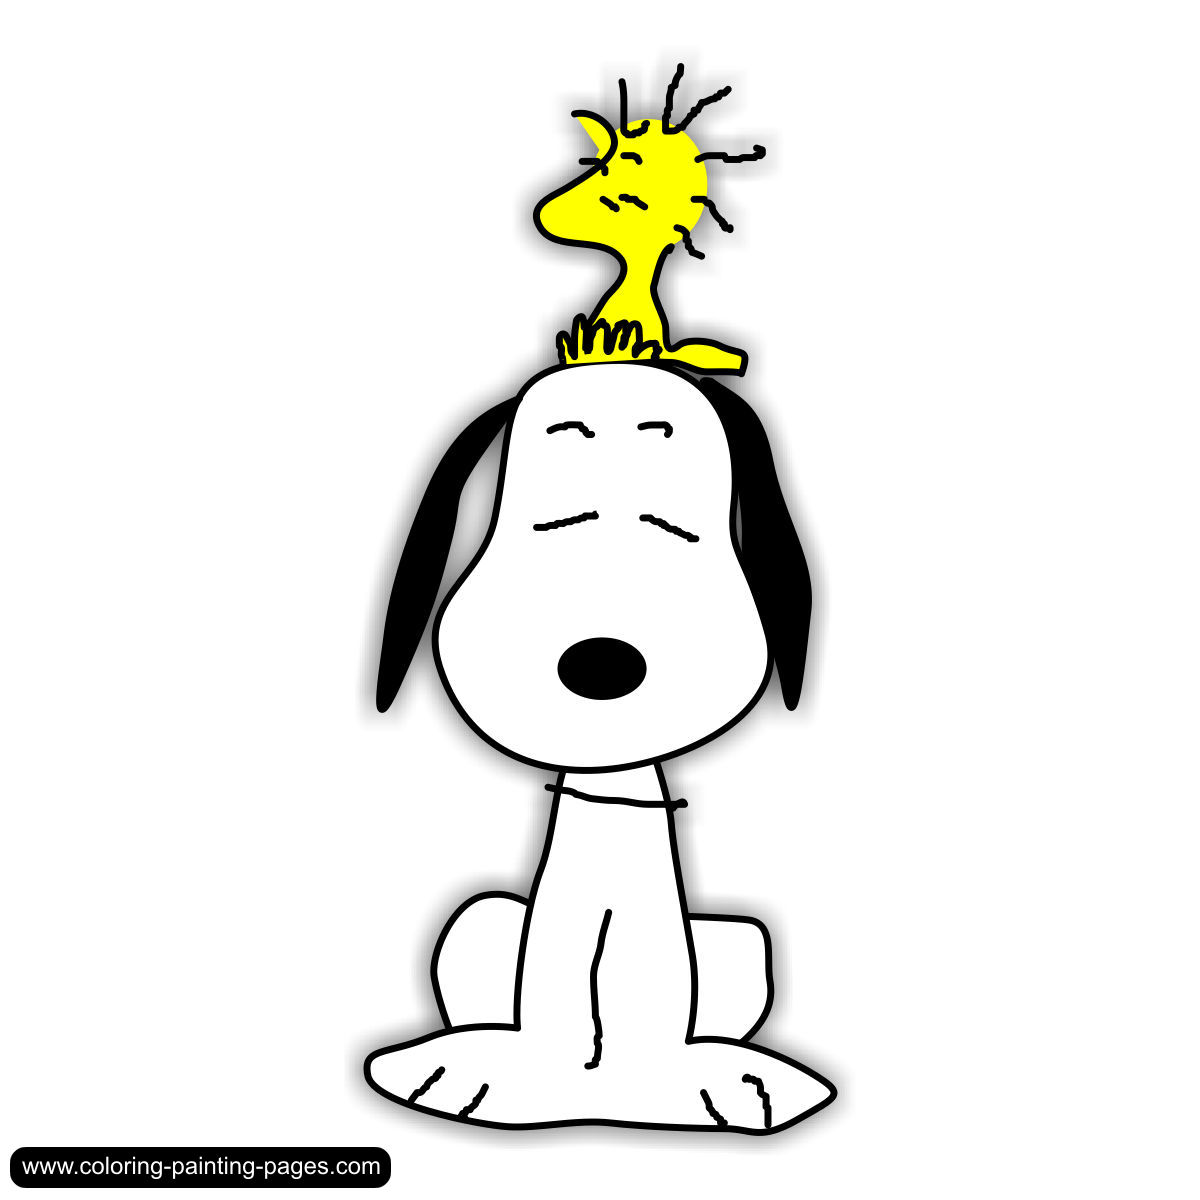 Animated Snoopy Cliparts